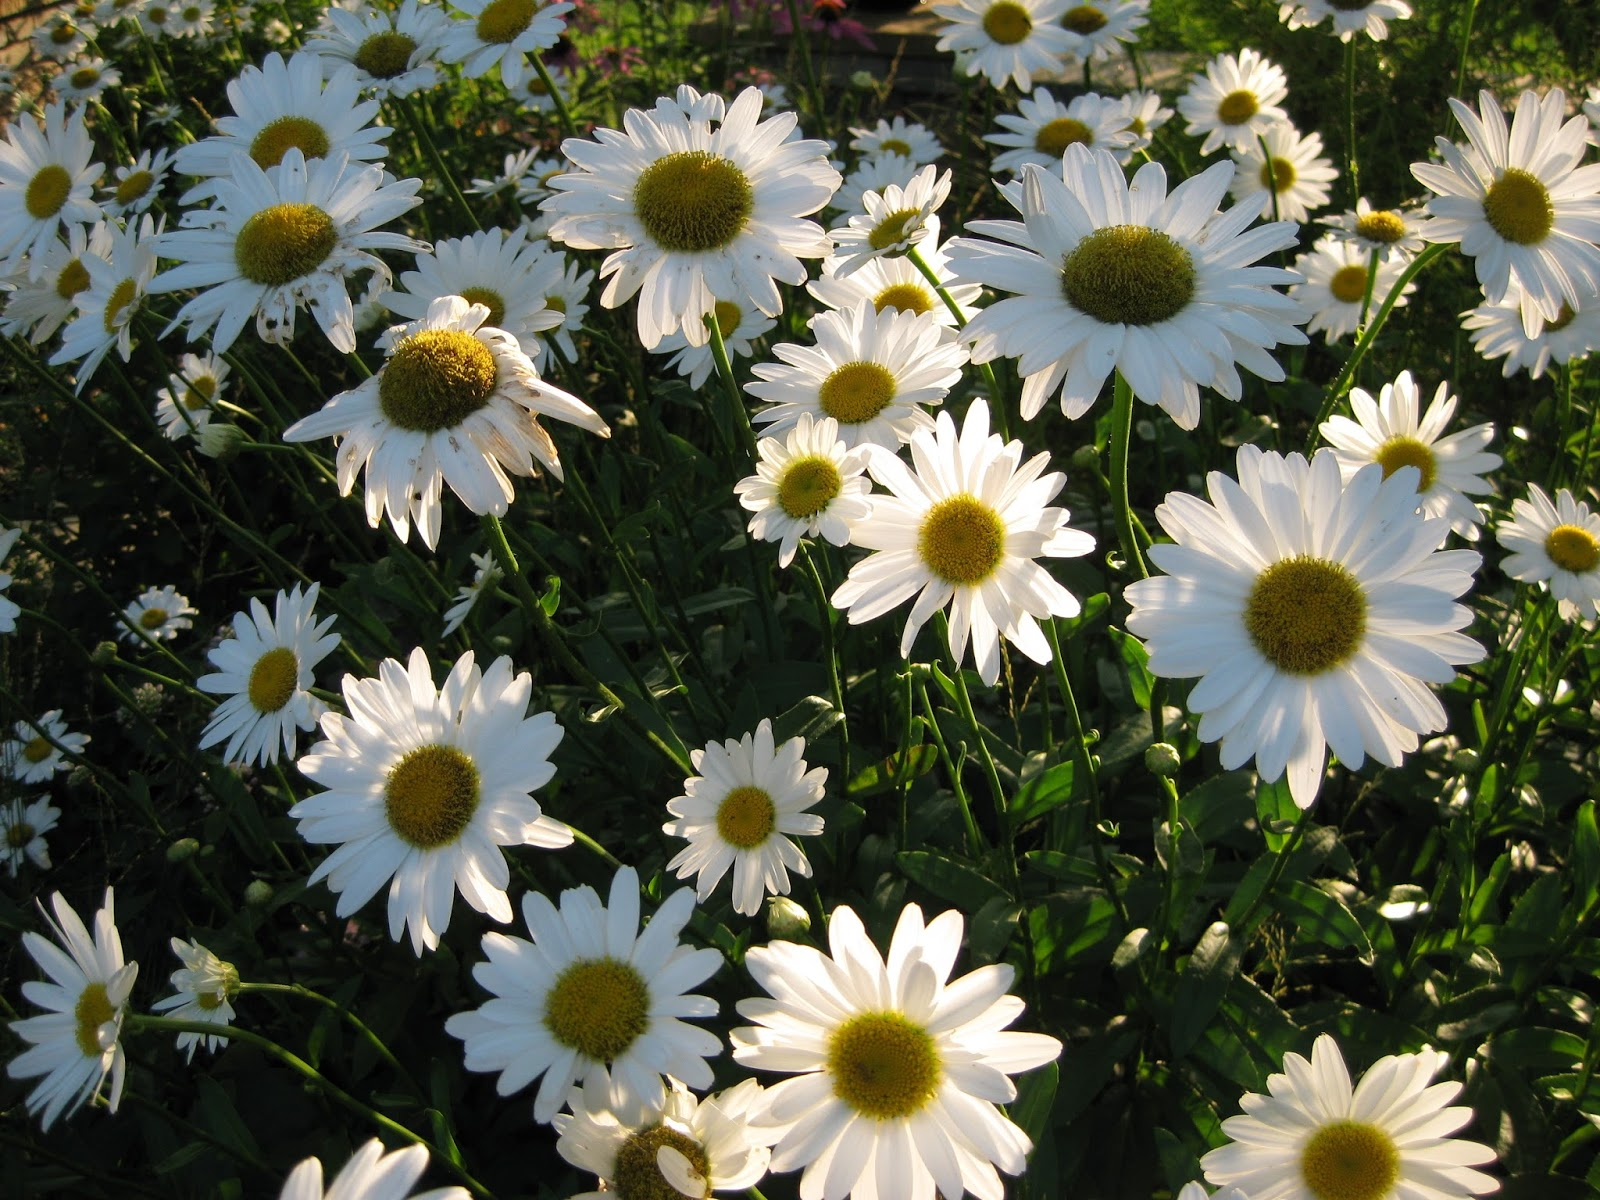 The shasta daisy leucanthemum rotary botanical gardens i reached a milestone with the blog posting yesterday being my 2000ththe holiday light show hls ran well last night and saw a moderate crowd for izmirmasajfo